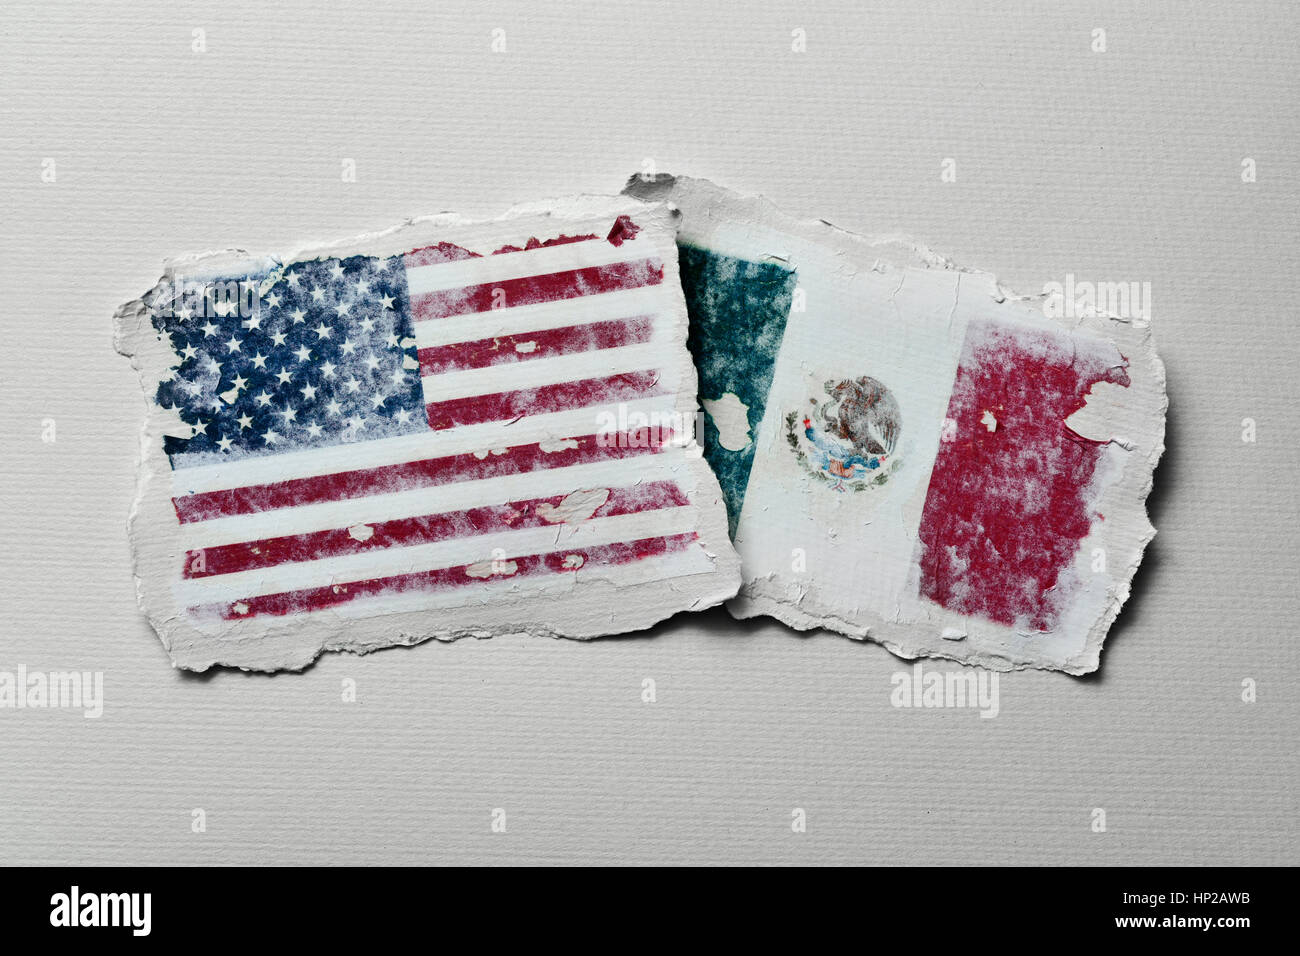 the flag of United States and the flag of Mexico in two aged pieces of paper on an off-white background - Stock Image